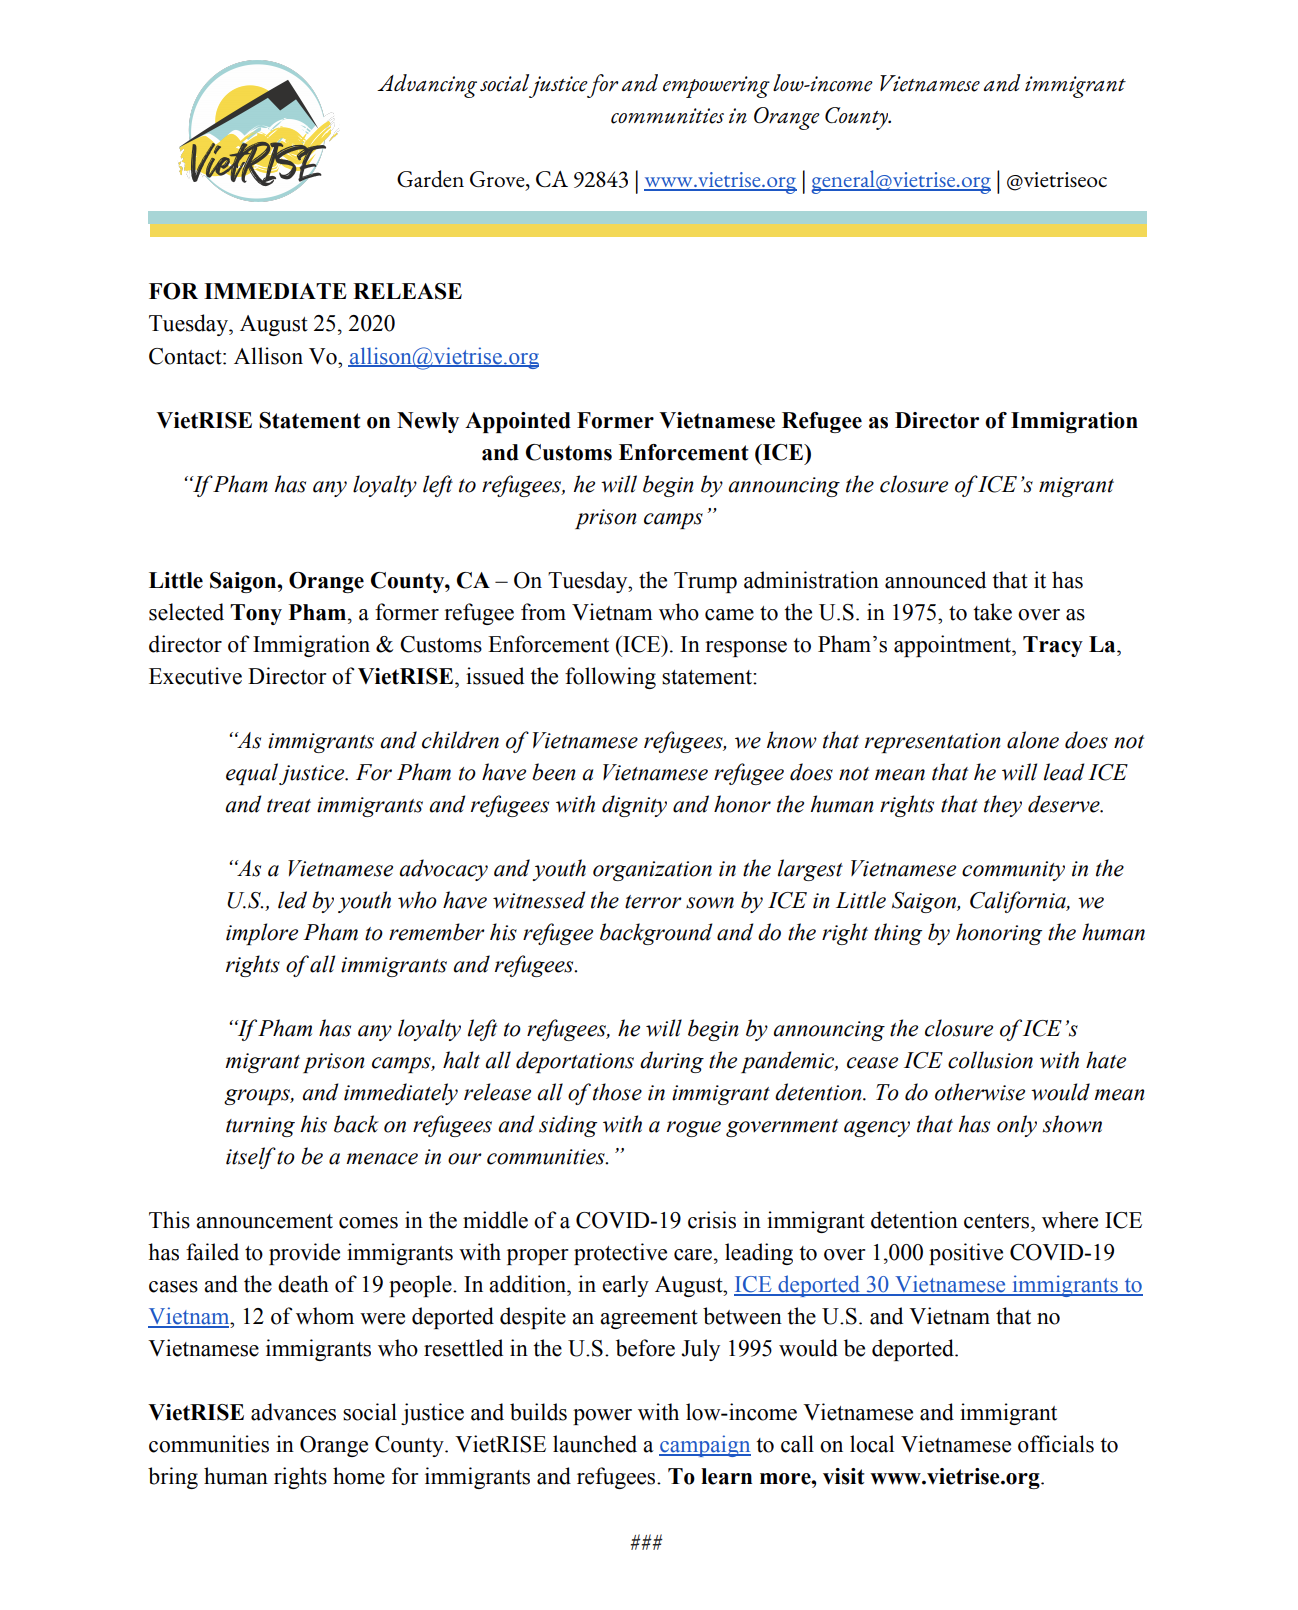 VietRISE Statement on Newly Appointed Former Vietnamese Refugee as Director of Immigration and Customs Enforcement (ICE)